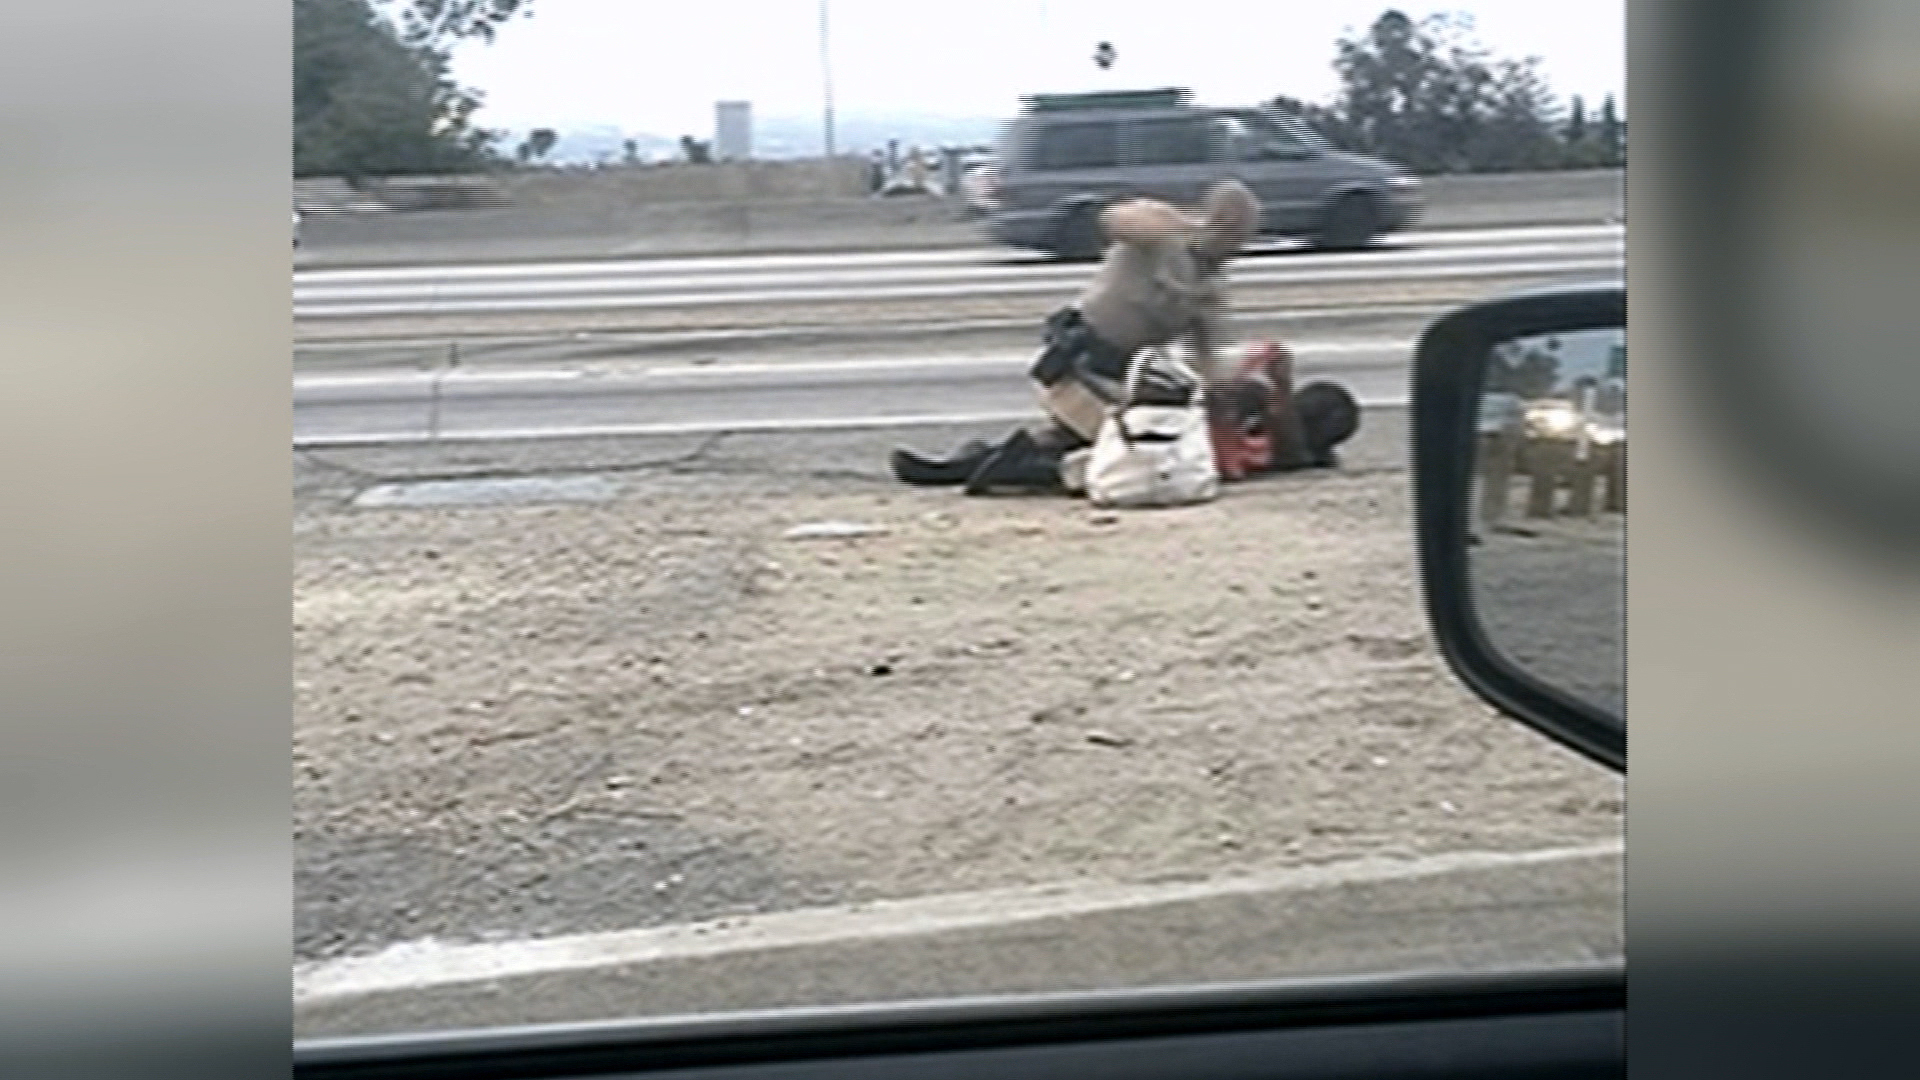 Investigation underway in CA highway beating